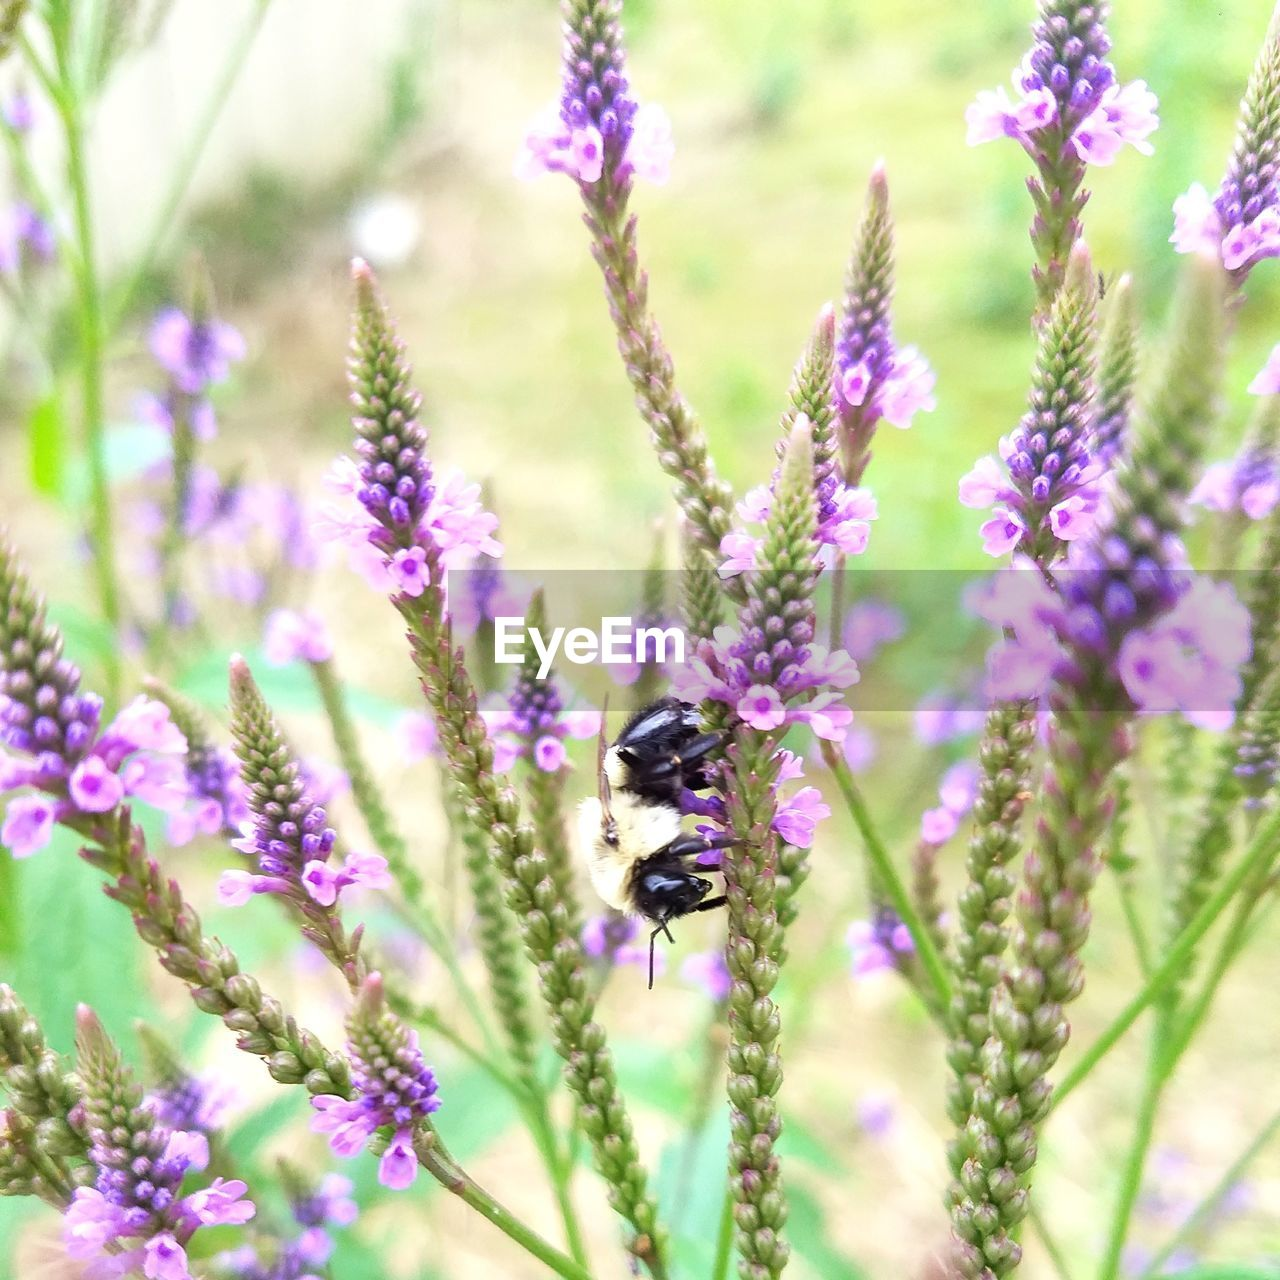 insect, bee, animal themes, flower, one animal, animals in the wild, nature, honey bee, growth, plant, fragility, pollination, wildlife, animal wildlife, beauty in nature, no people, purple, day, symbiotic relationship, bumblebee, petal, outdoors, buzzing, freshness, close-up, flower head